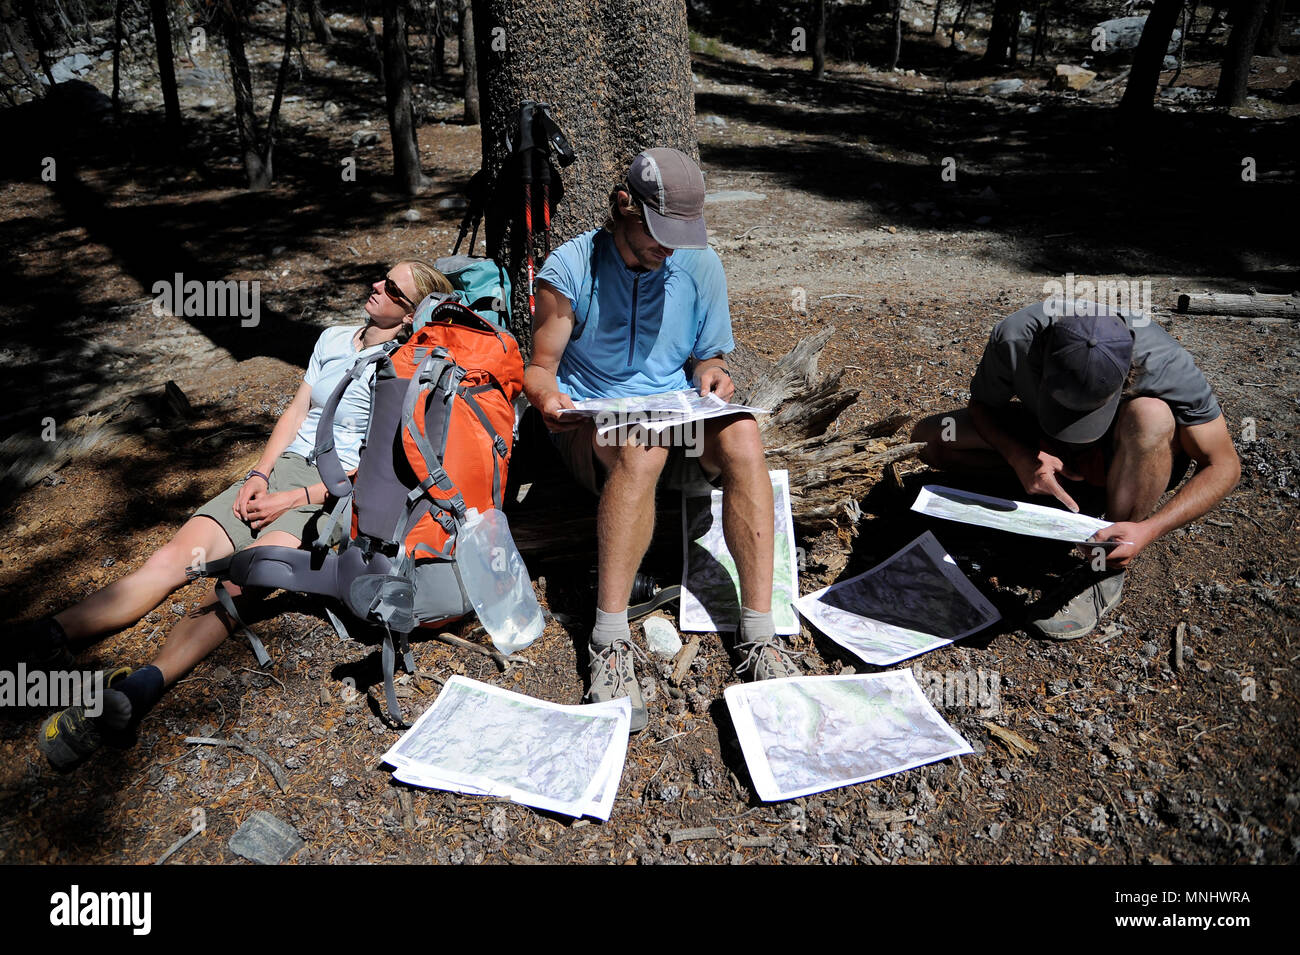 Backpackers consult their maps at Horse Heaven on trek of Sierra High Route in John Muir Wilderness in California, USA - Stock Image